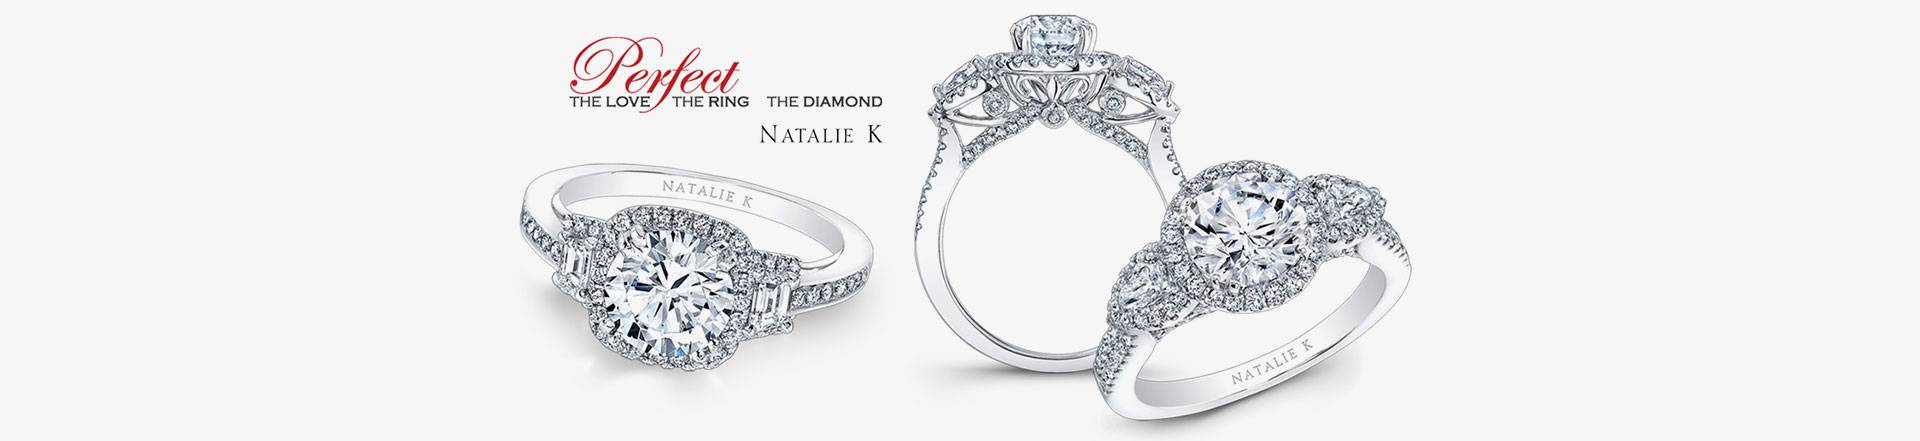 cut cushion stone product white with graduated a diamonds natalie center ring k engagement side shown platinum diamond gold carat rings